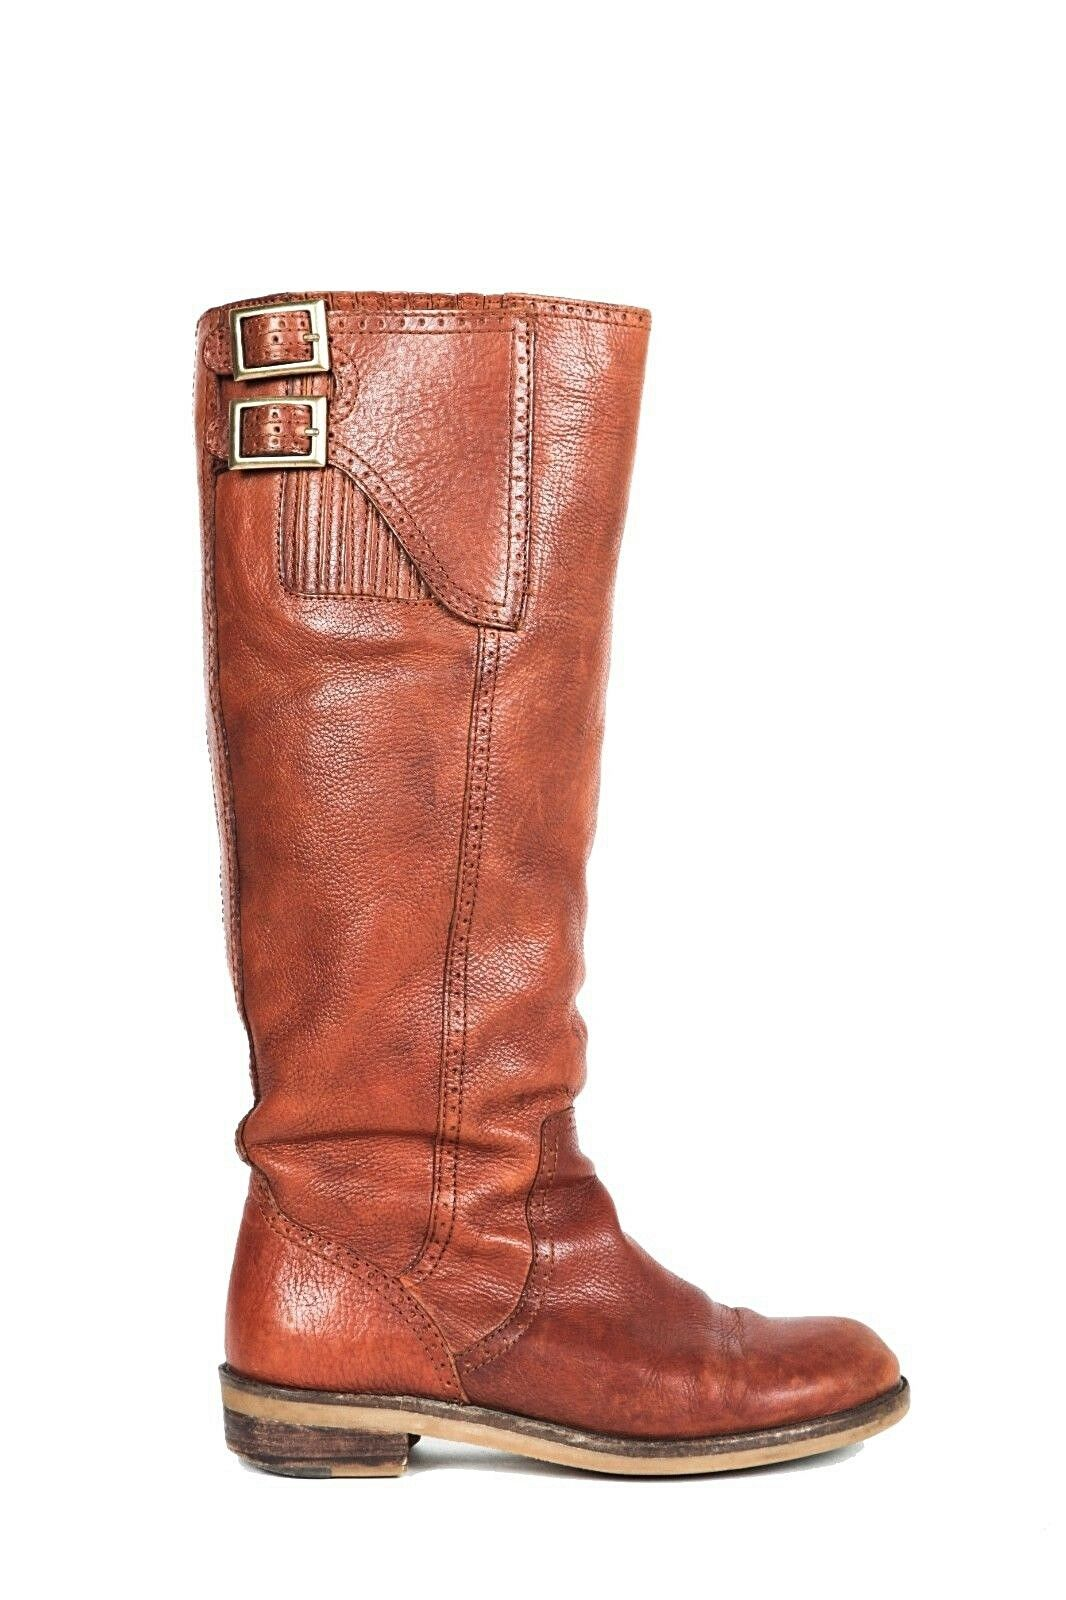 LUCKY BRAND Andria Riding Boots US 6.5 Leather Brown Buckles Knee High Low Heel